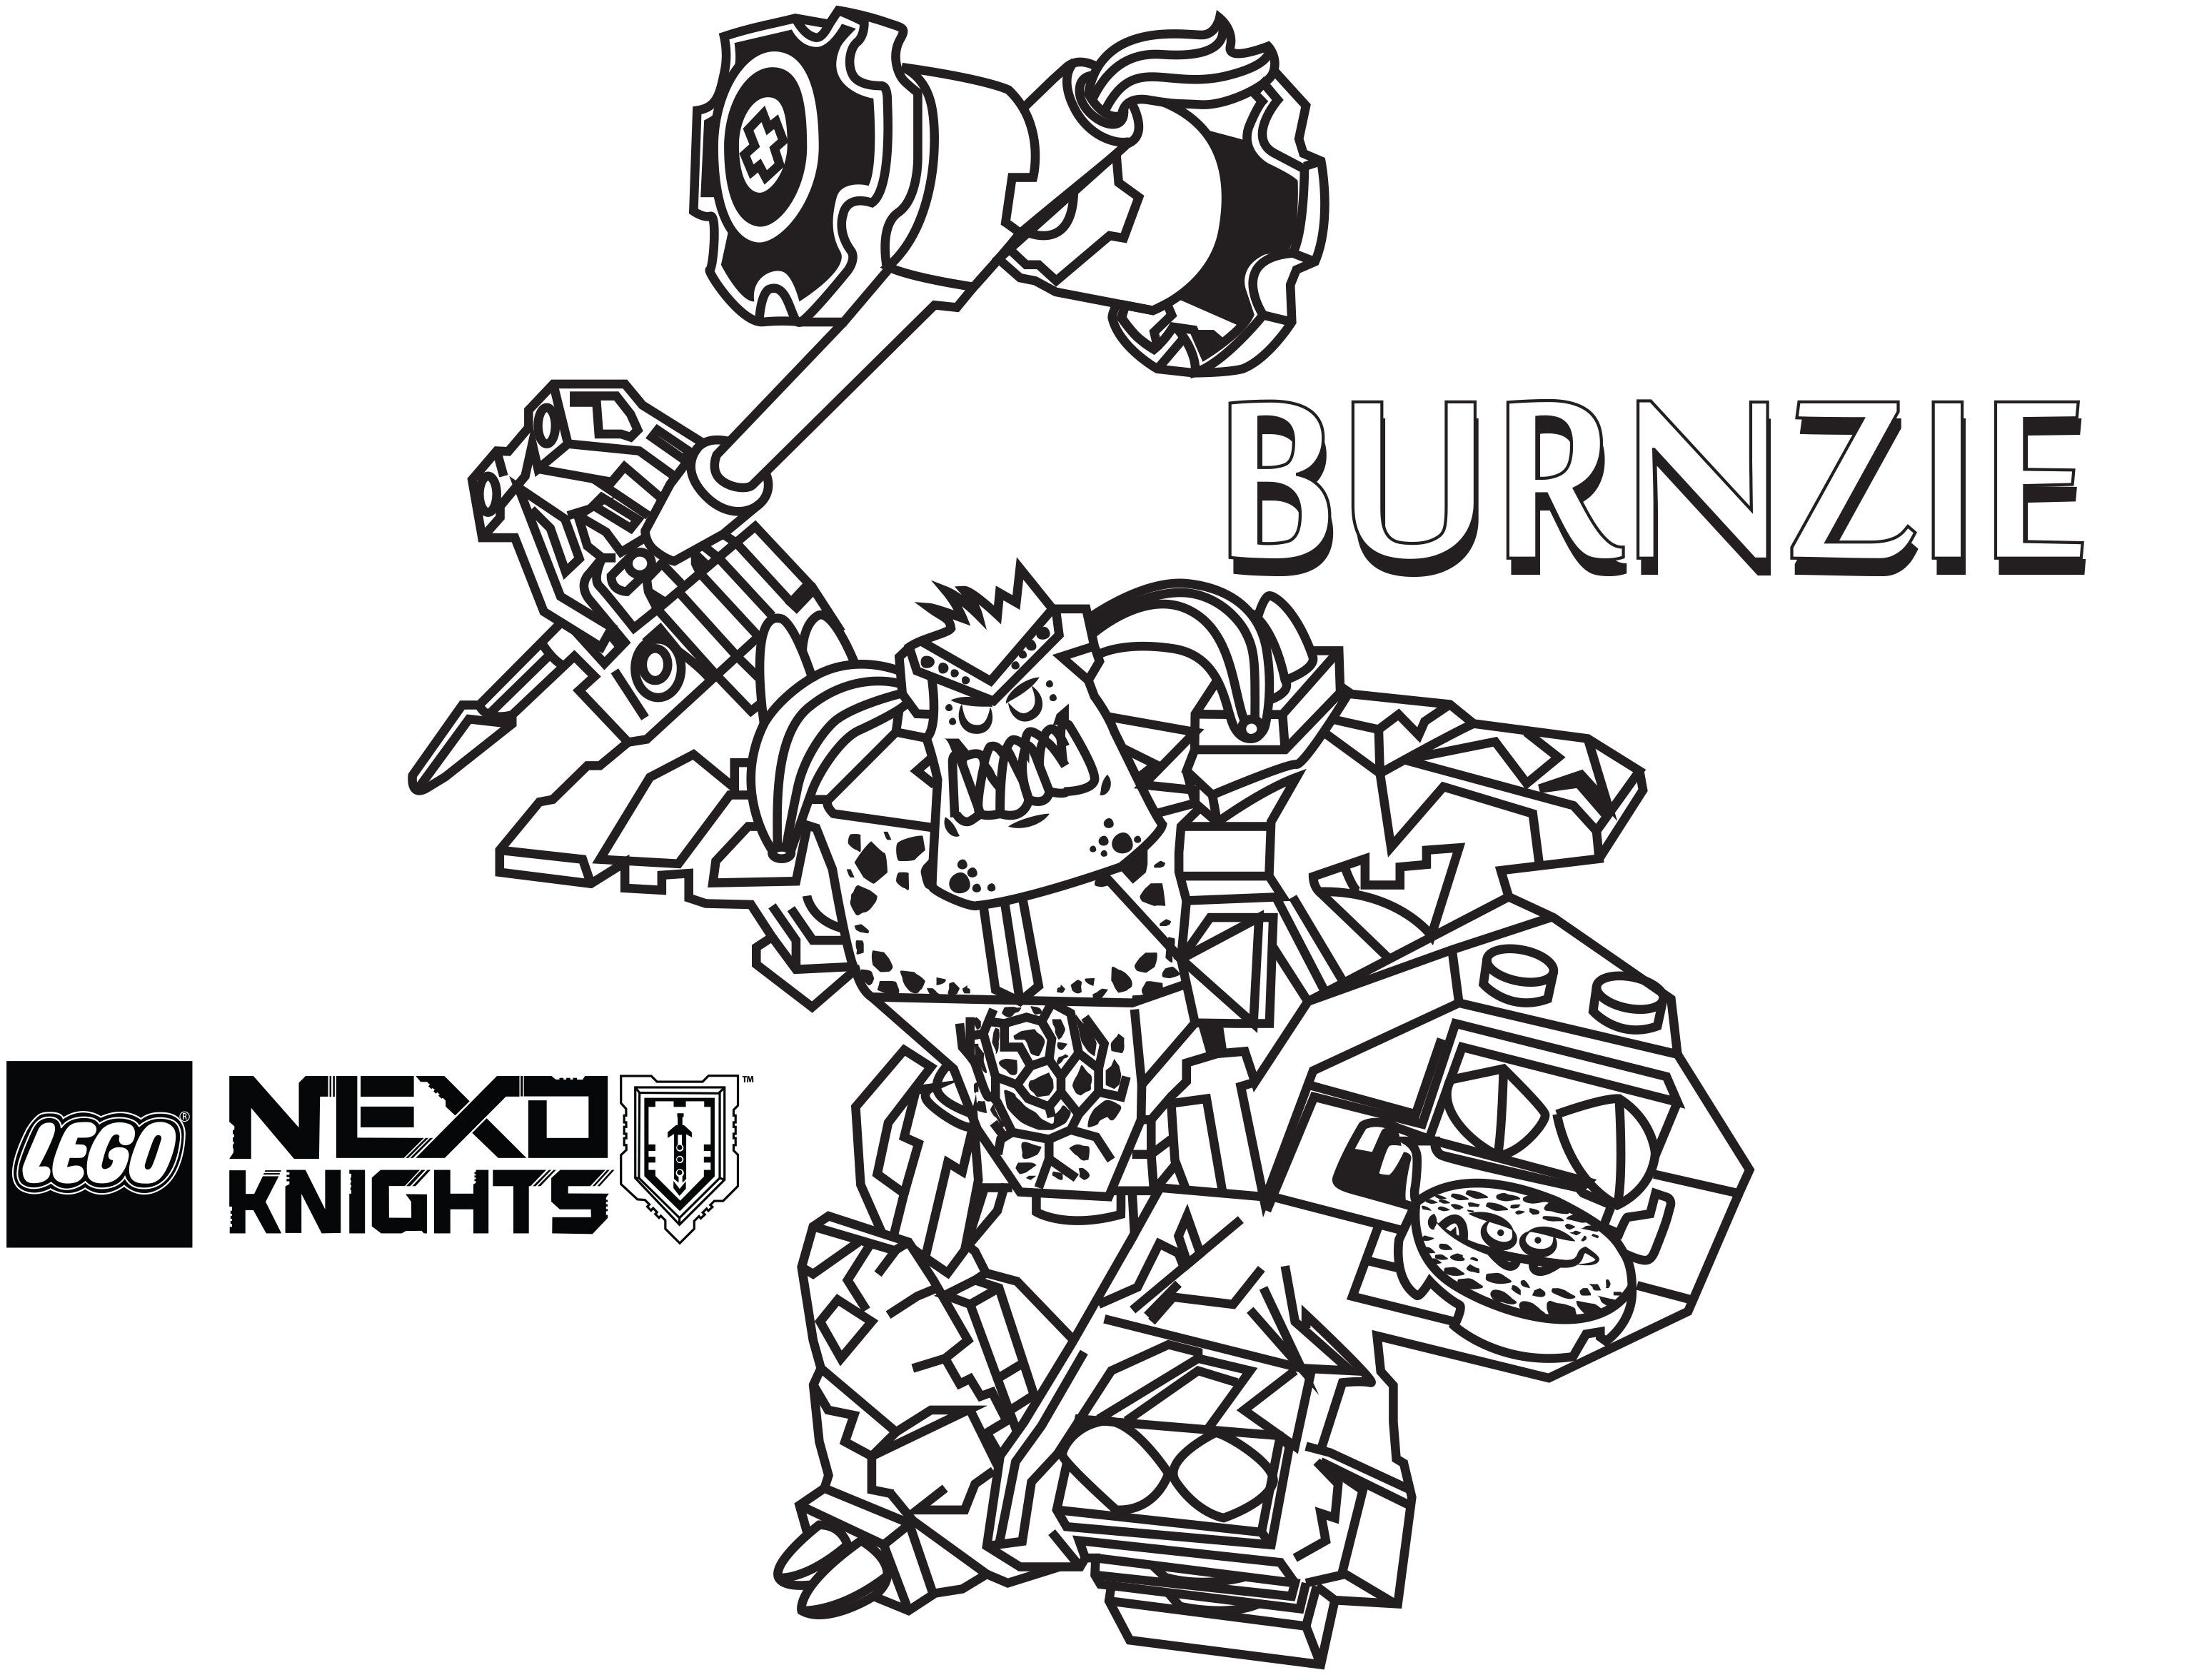 lego nexo knights coloring pages 2 - Knight Coloring Pages 2